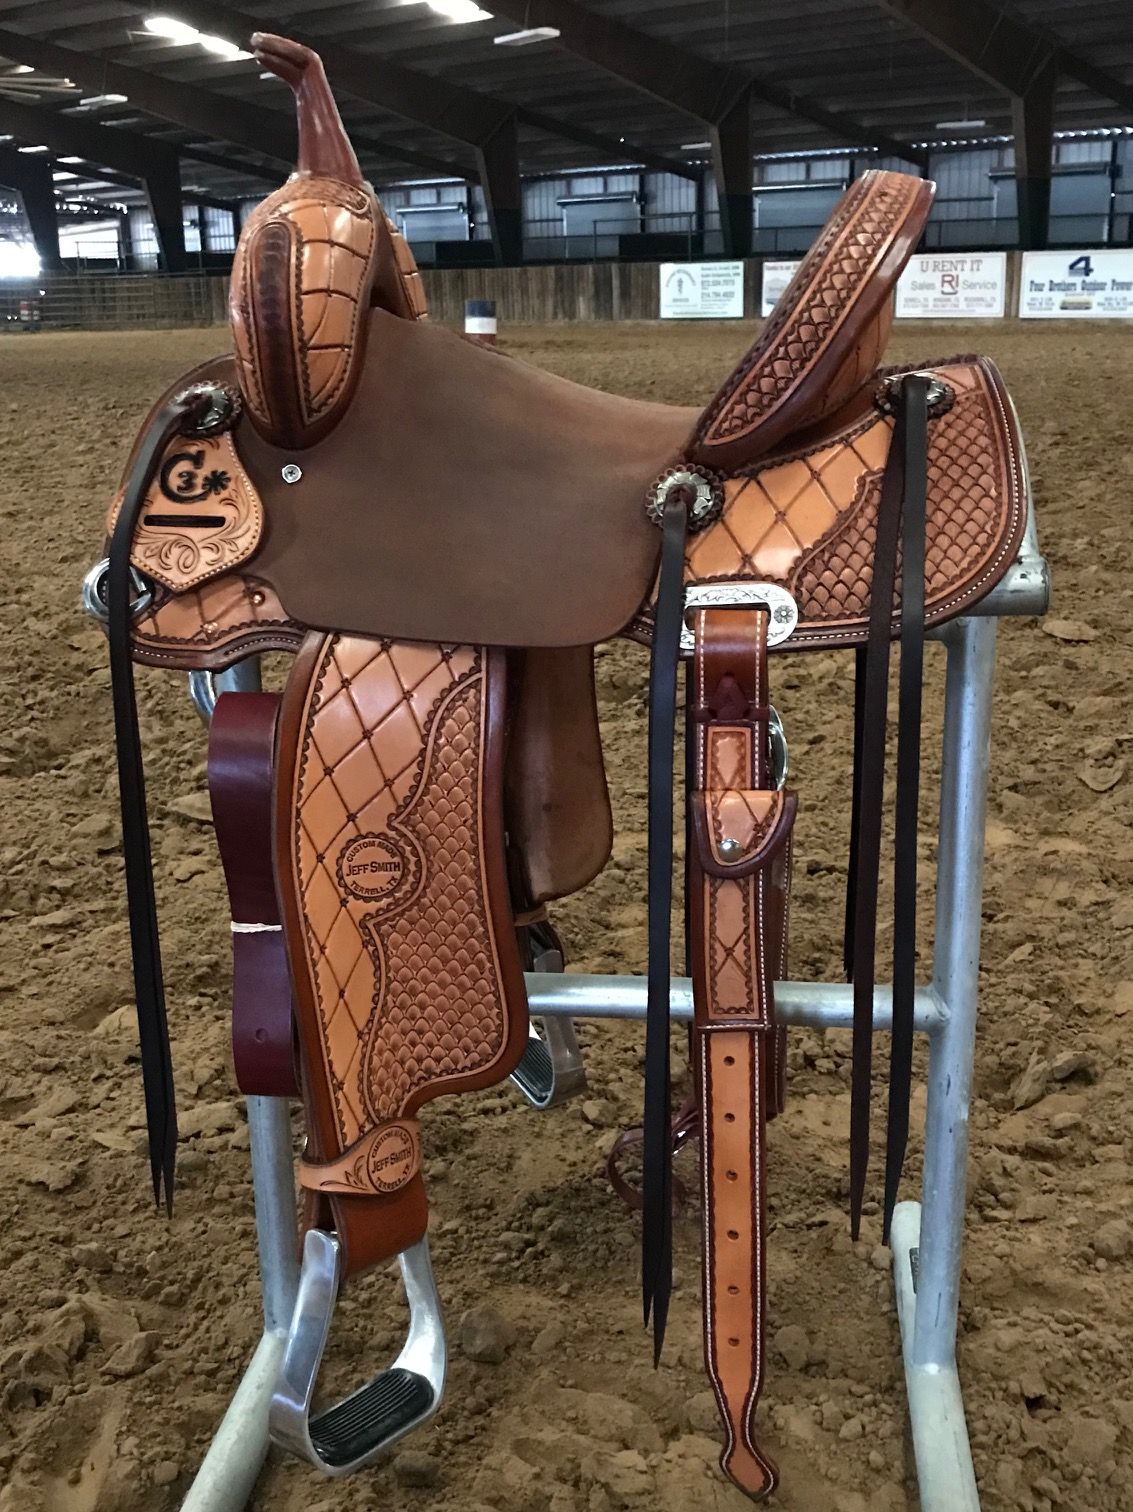 Jeff Smith's C3 Barrel Racer #4226 Seat: 13in Swell Height: 9in